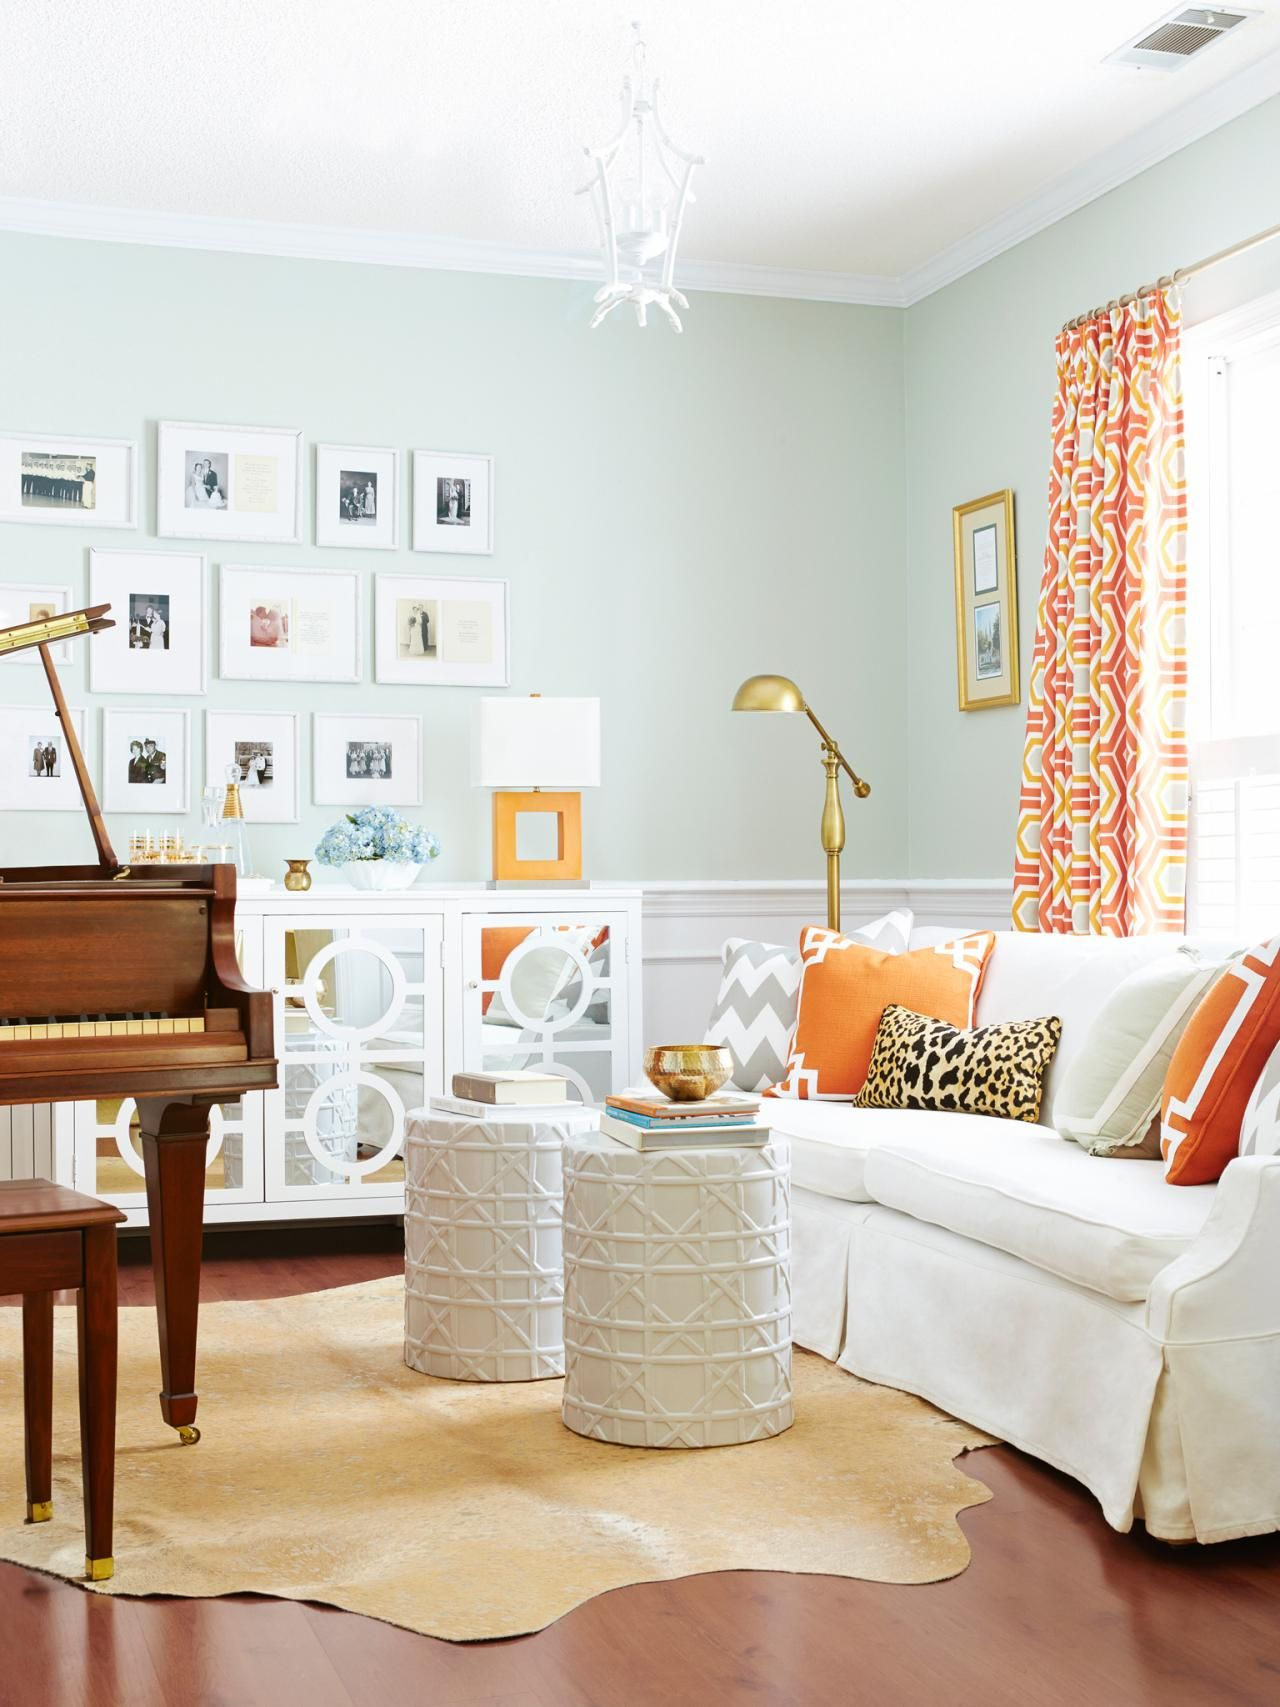 Quirky Decor Garden Stools Hgtv Magazine Living Area Rooms Extended